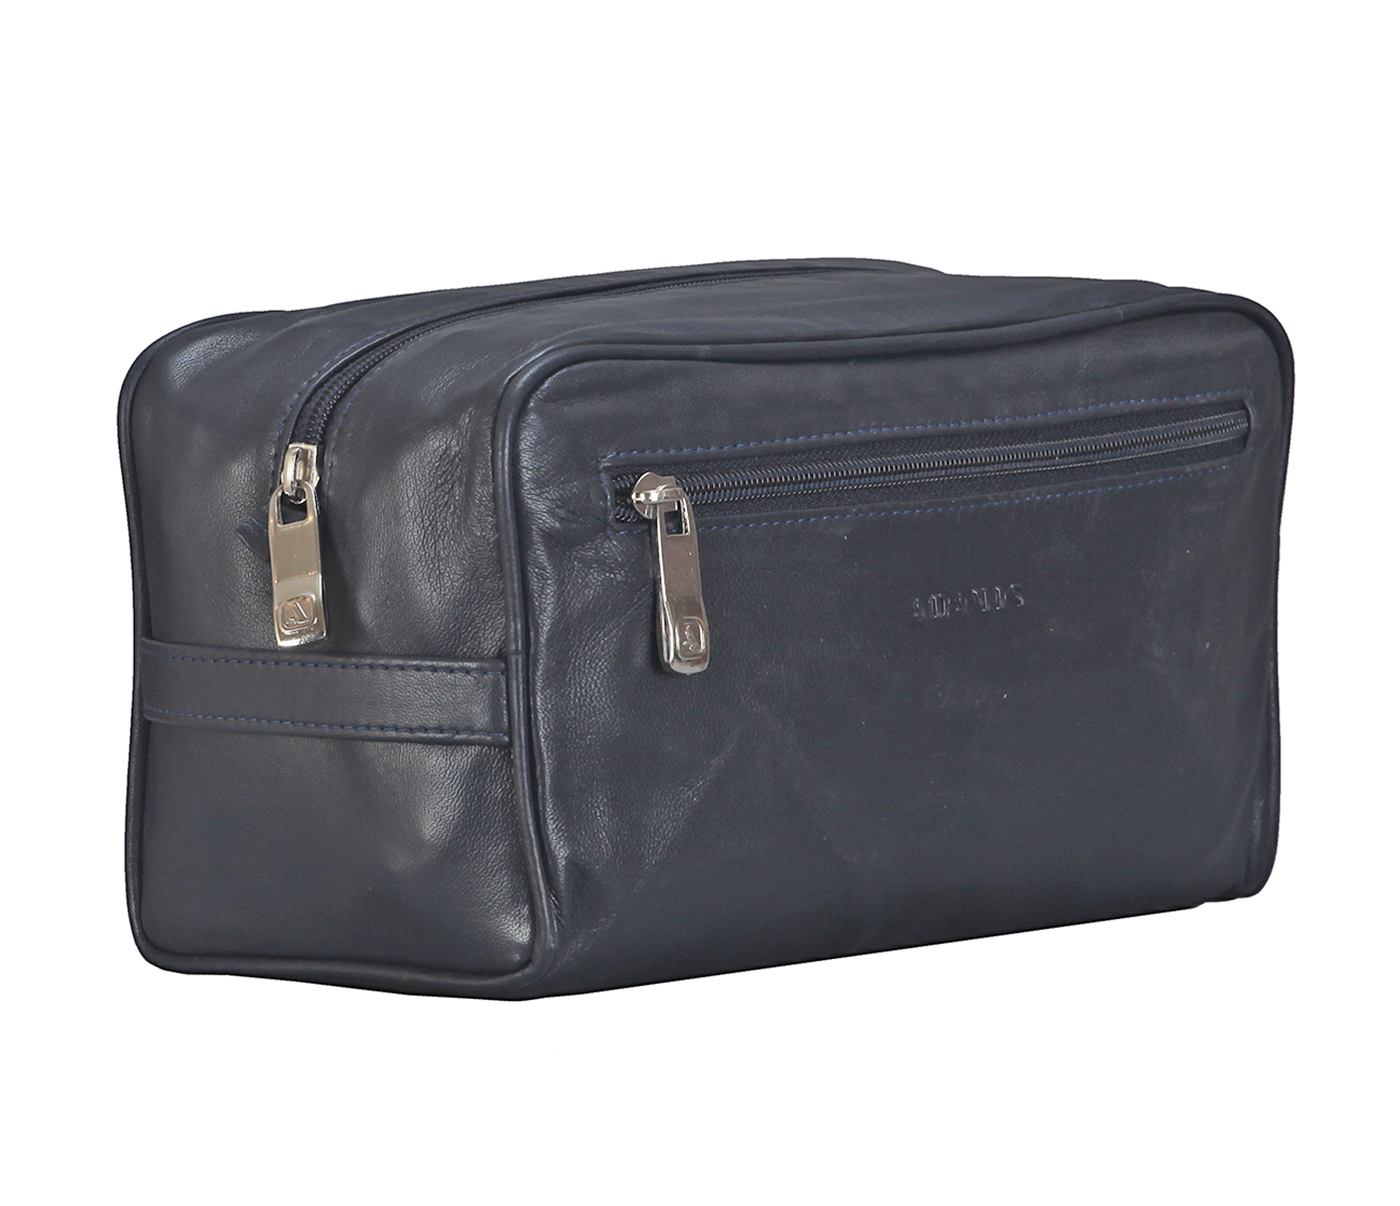 SC1--Unisex Wash & Toiletry travel Bag in Genuine Leather - Black